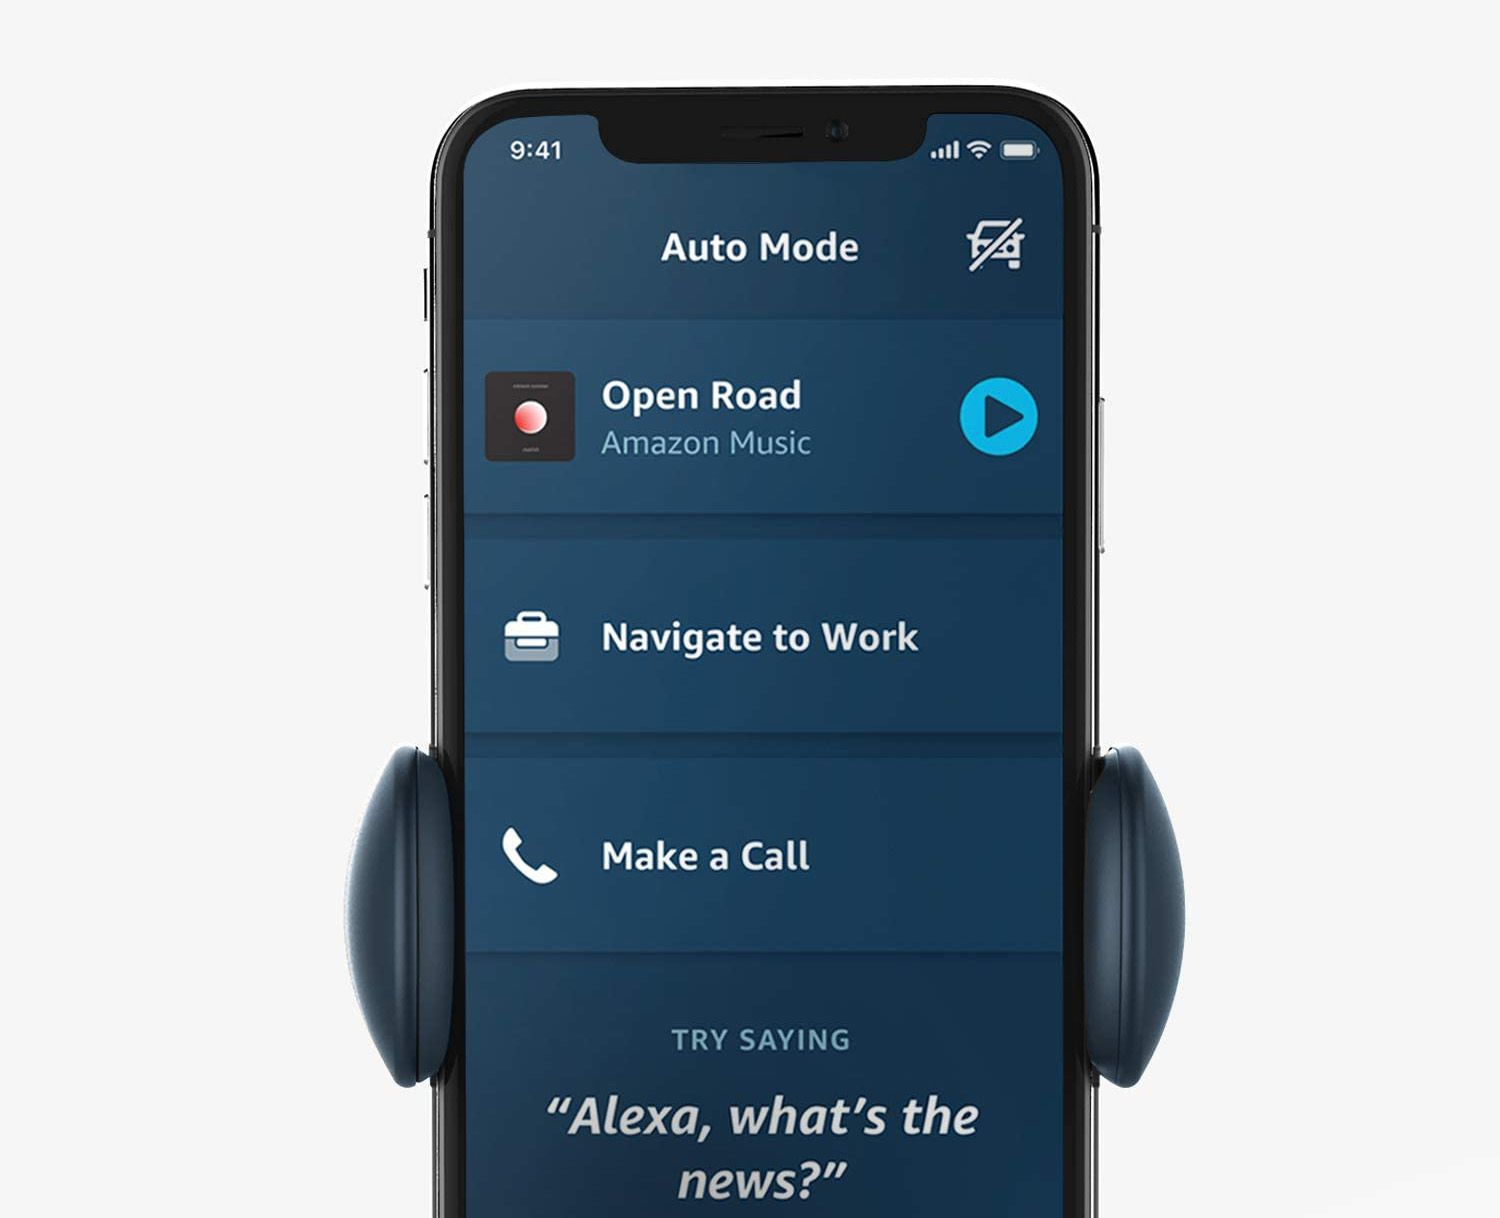 The Amazon Alexa app opens in Auto Mode when connected to the iOttie Aivo Connect.